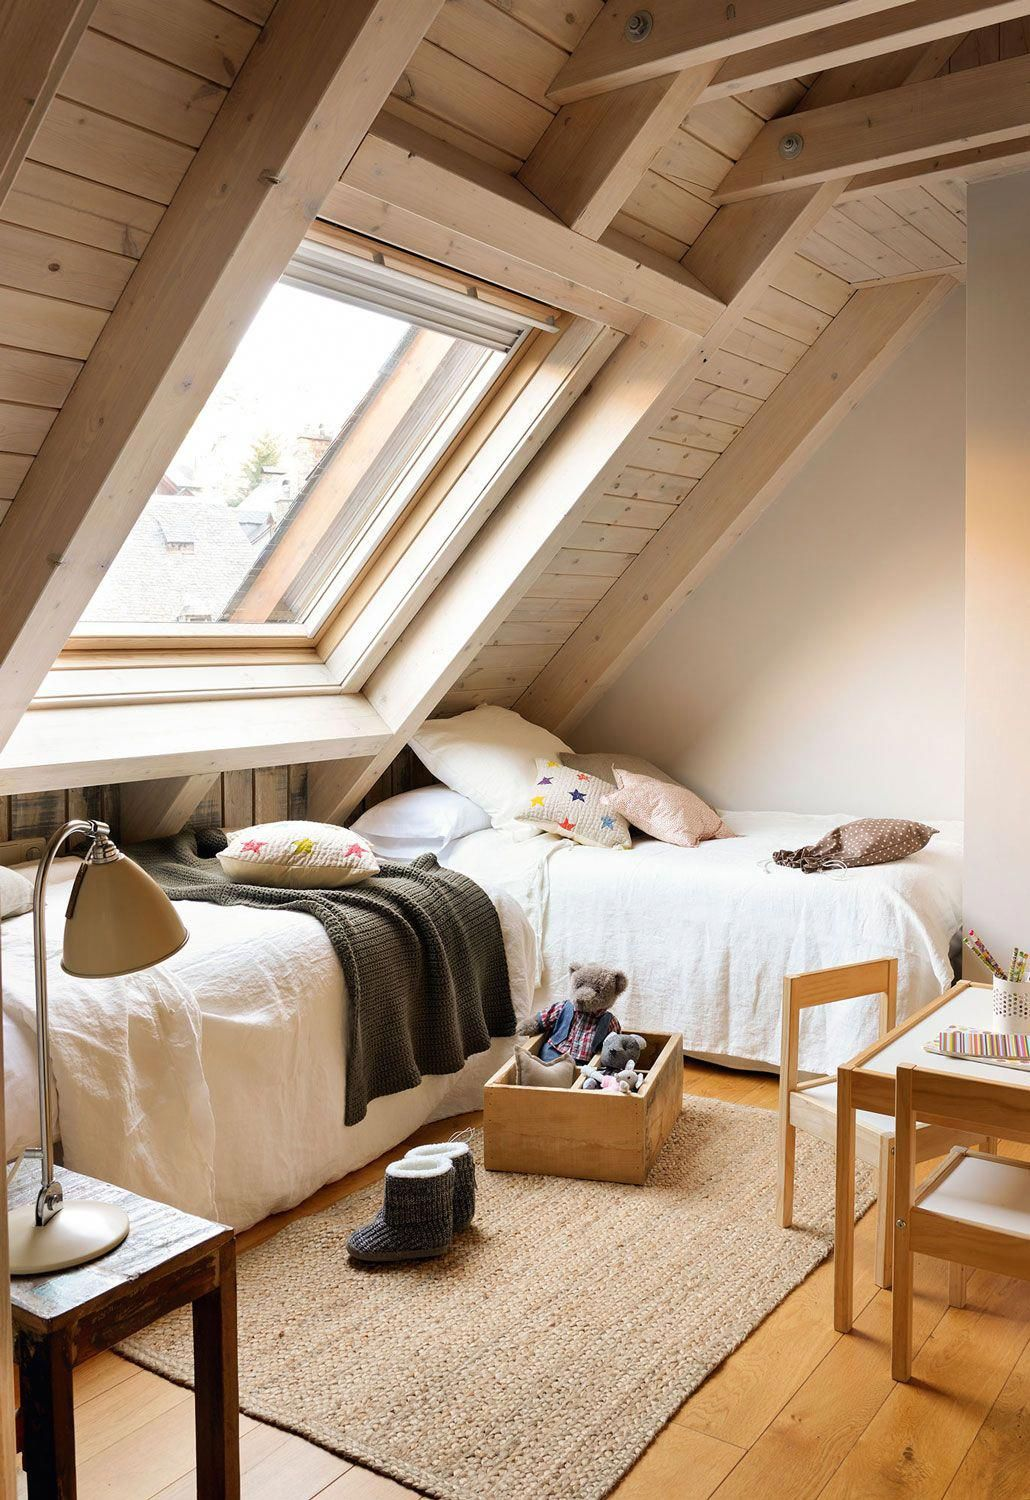 Must Read Bedroom Ideas And Plans In 2020 Attic Bedroom Designs Attic Bedroom Small Bedroom Design